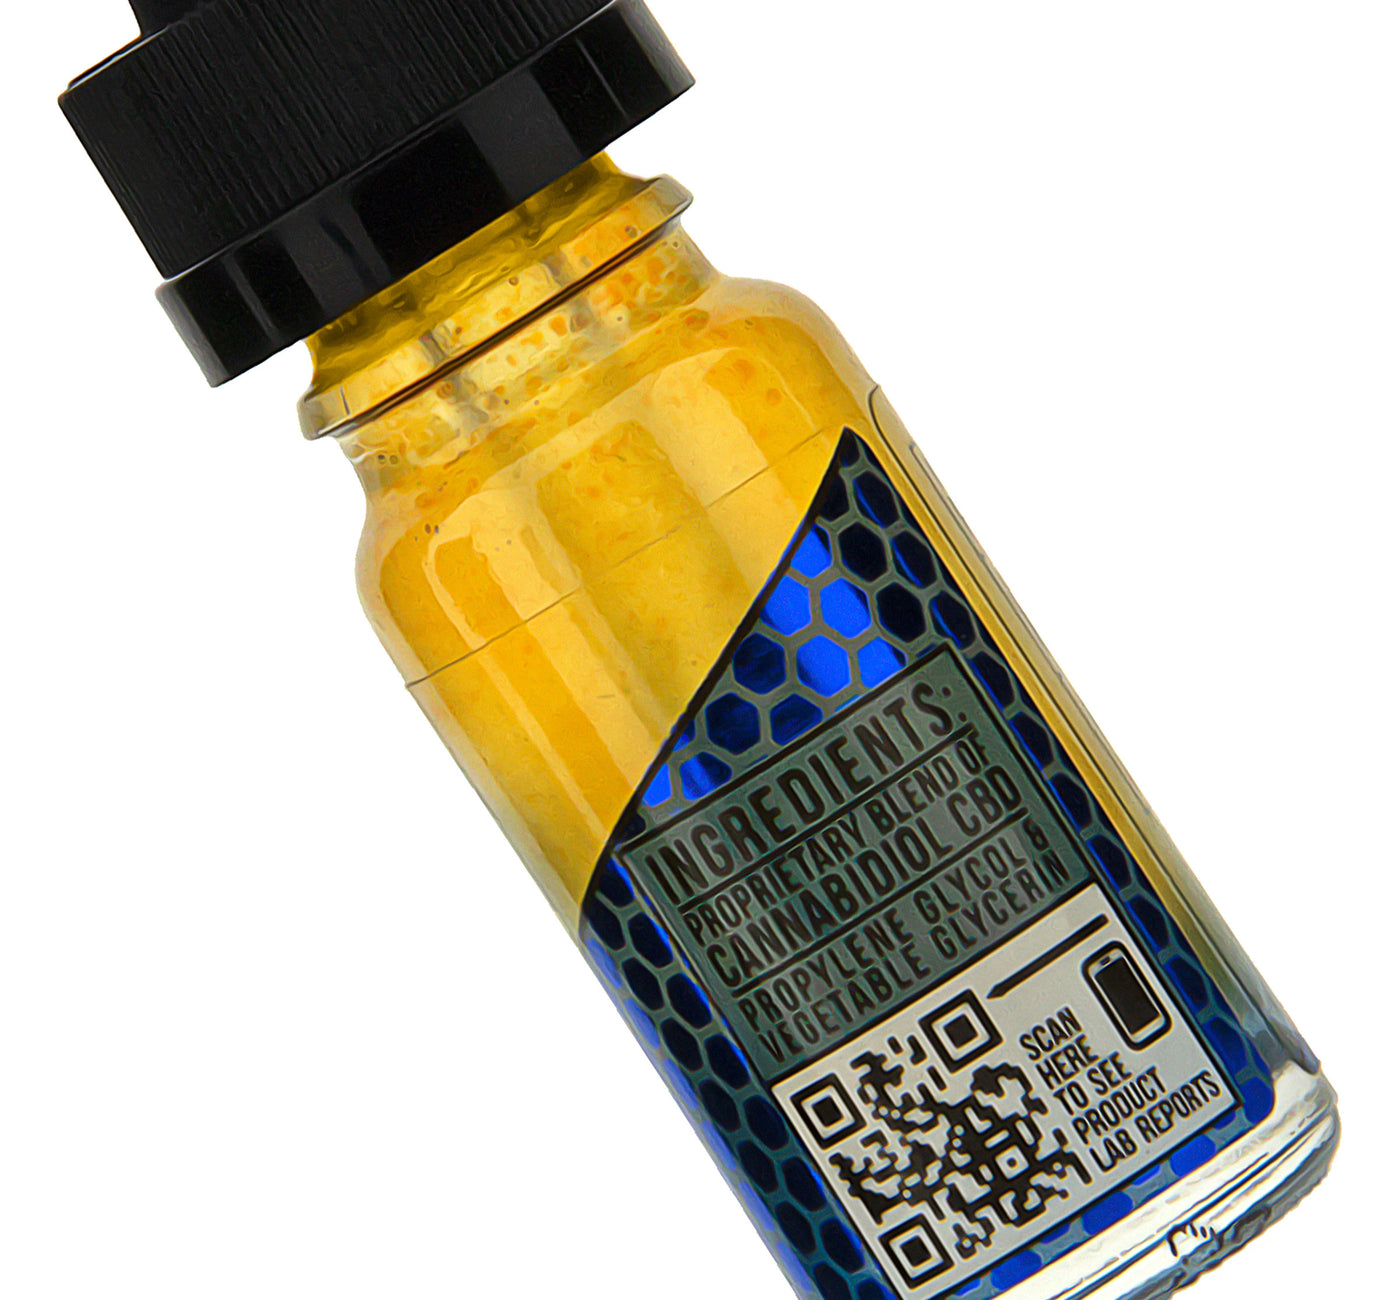 CBD Oil Vape Additive 120mg by CBDfx Ingredients Description